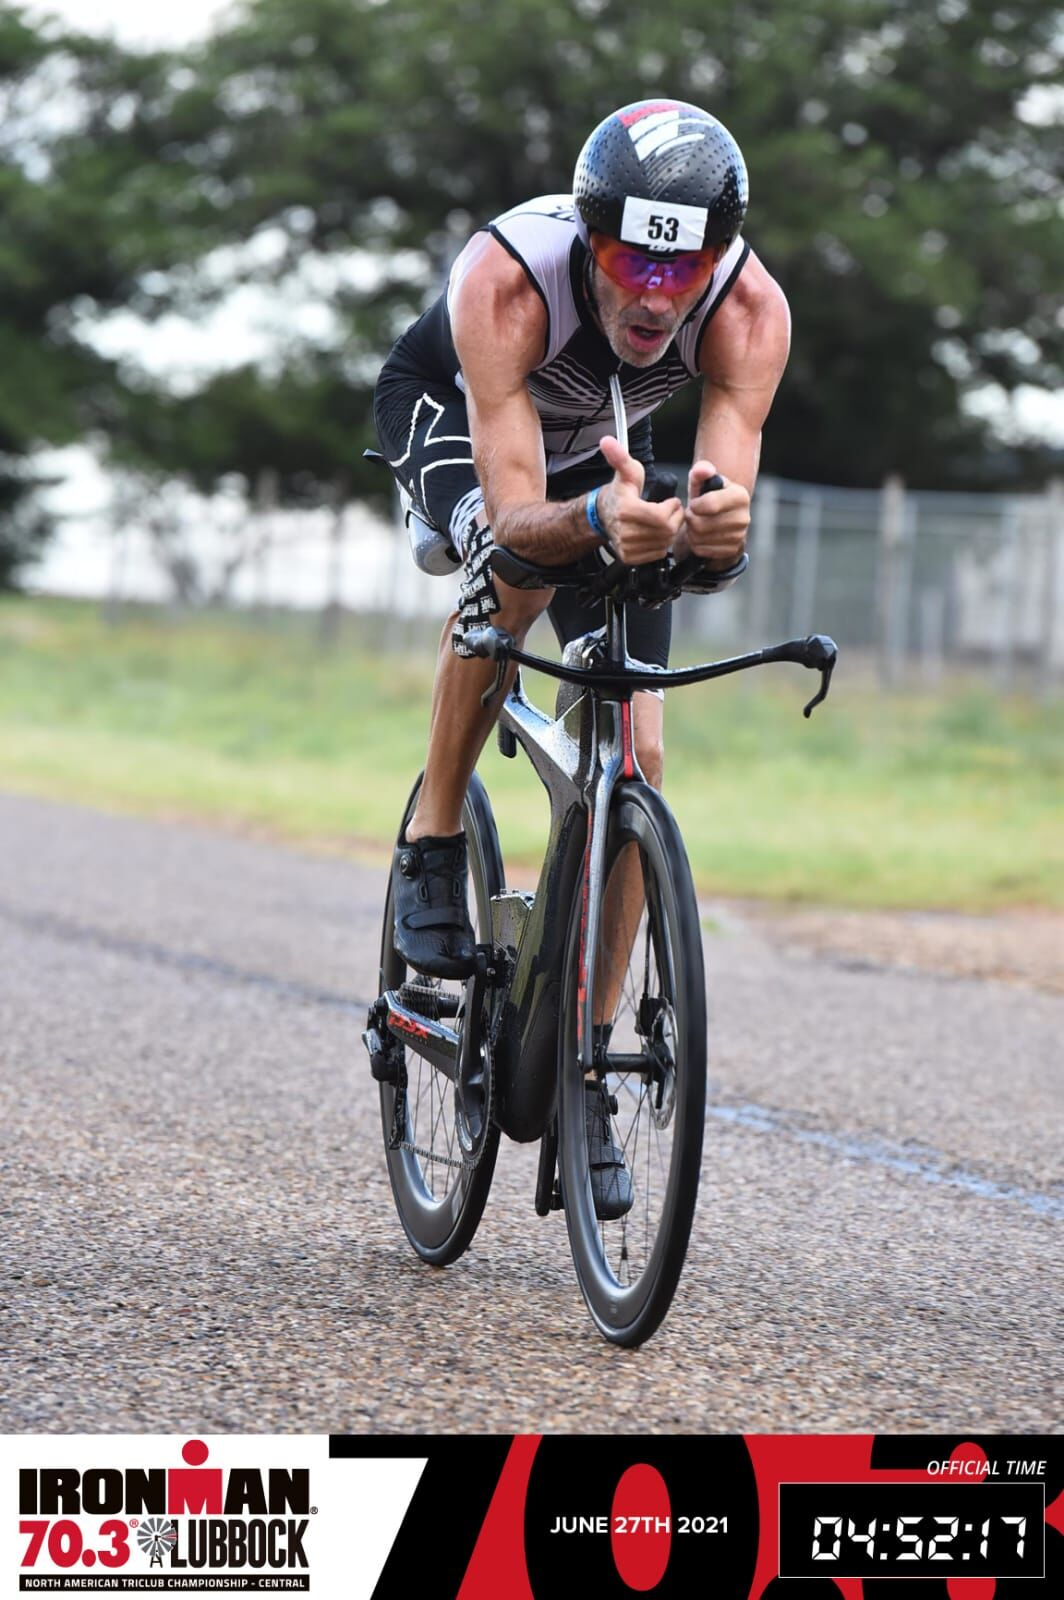 Weymouth qualifies for Ironman 70.3 World Championship